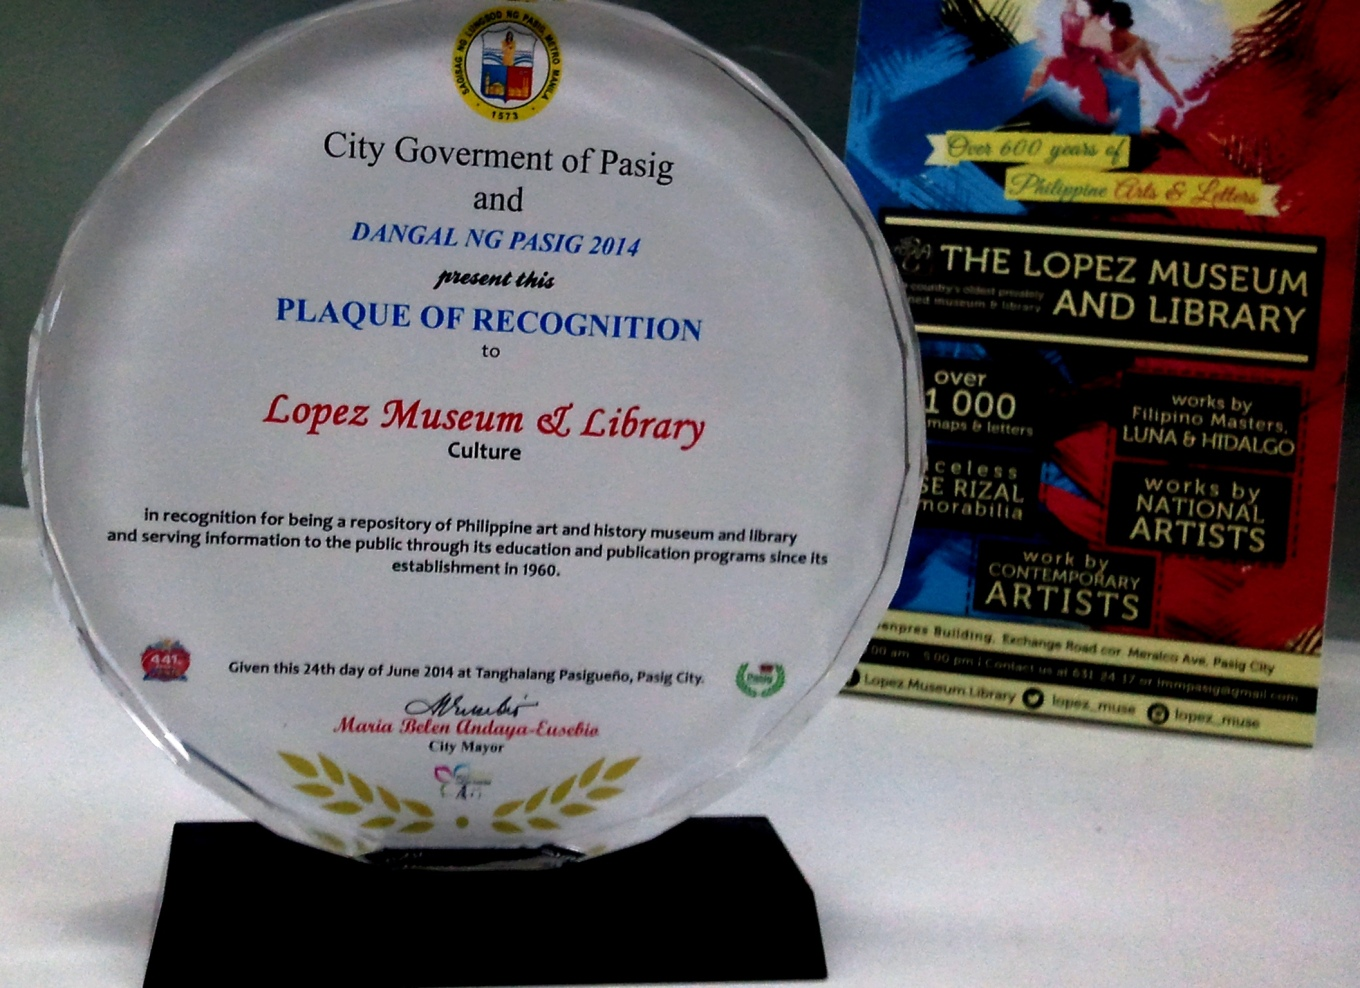 City Government of Pasig and Dangal ng Pasig 2014 presented a Plaque of Recognition to Lopez Museum and Library